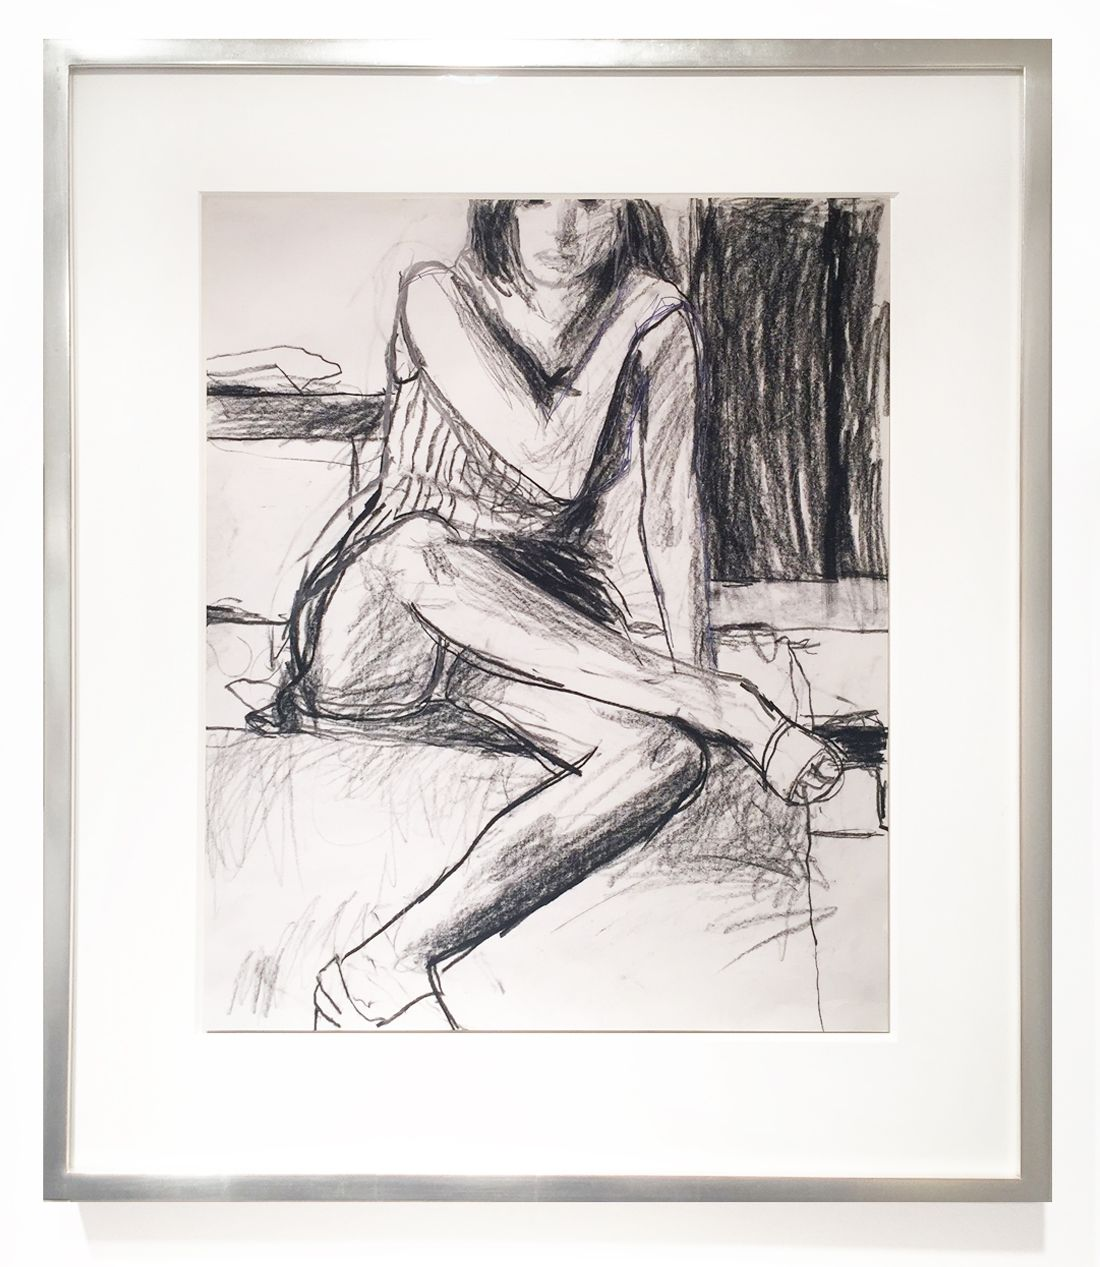 Richard Diebenkorn, Untitled, c. 1967